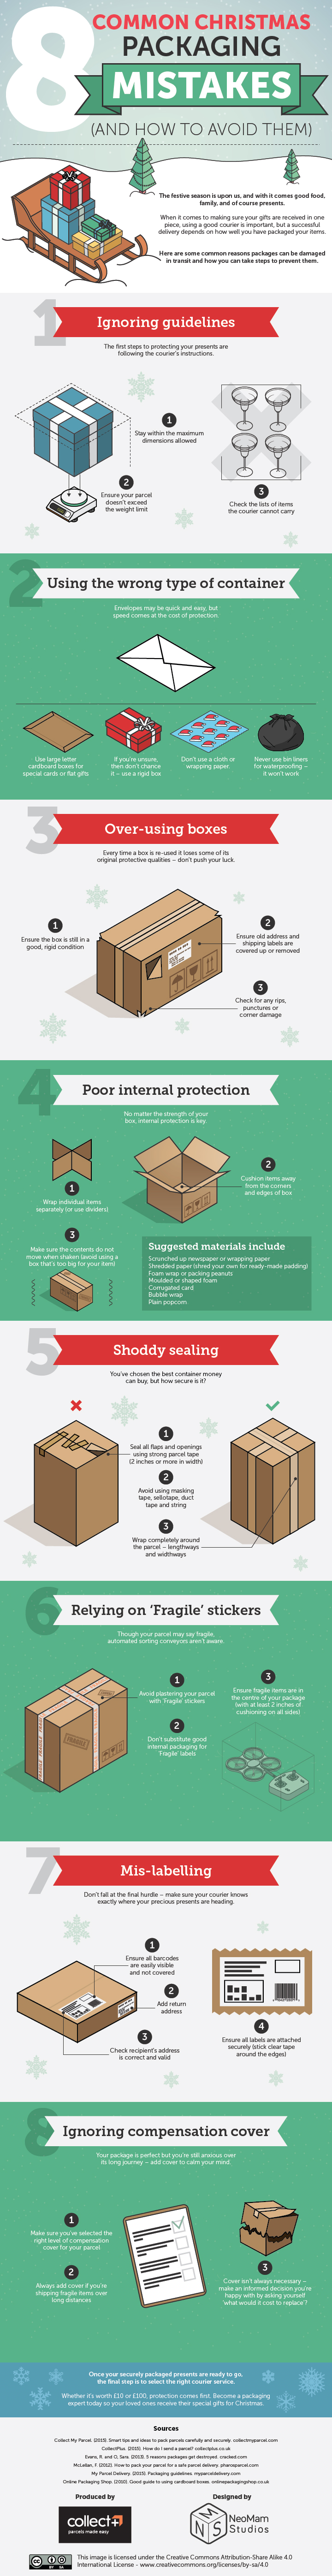 sending Christmas parcels infographic on how to package